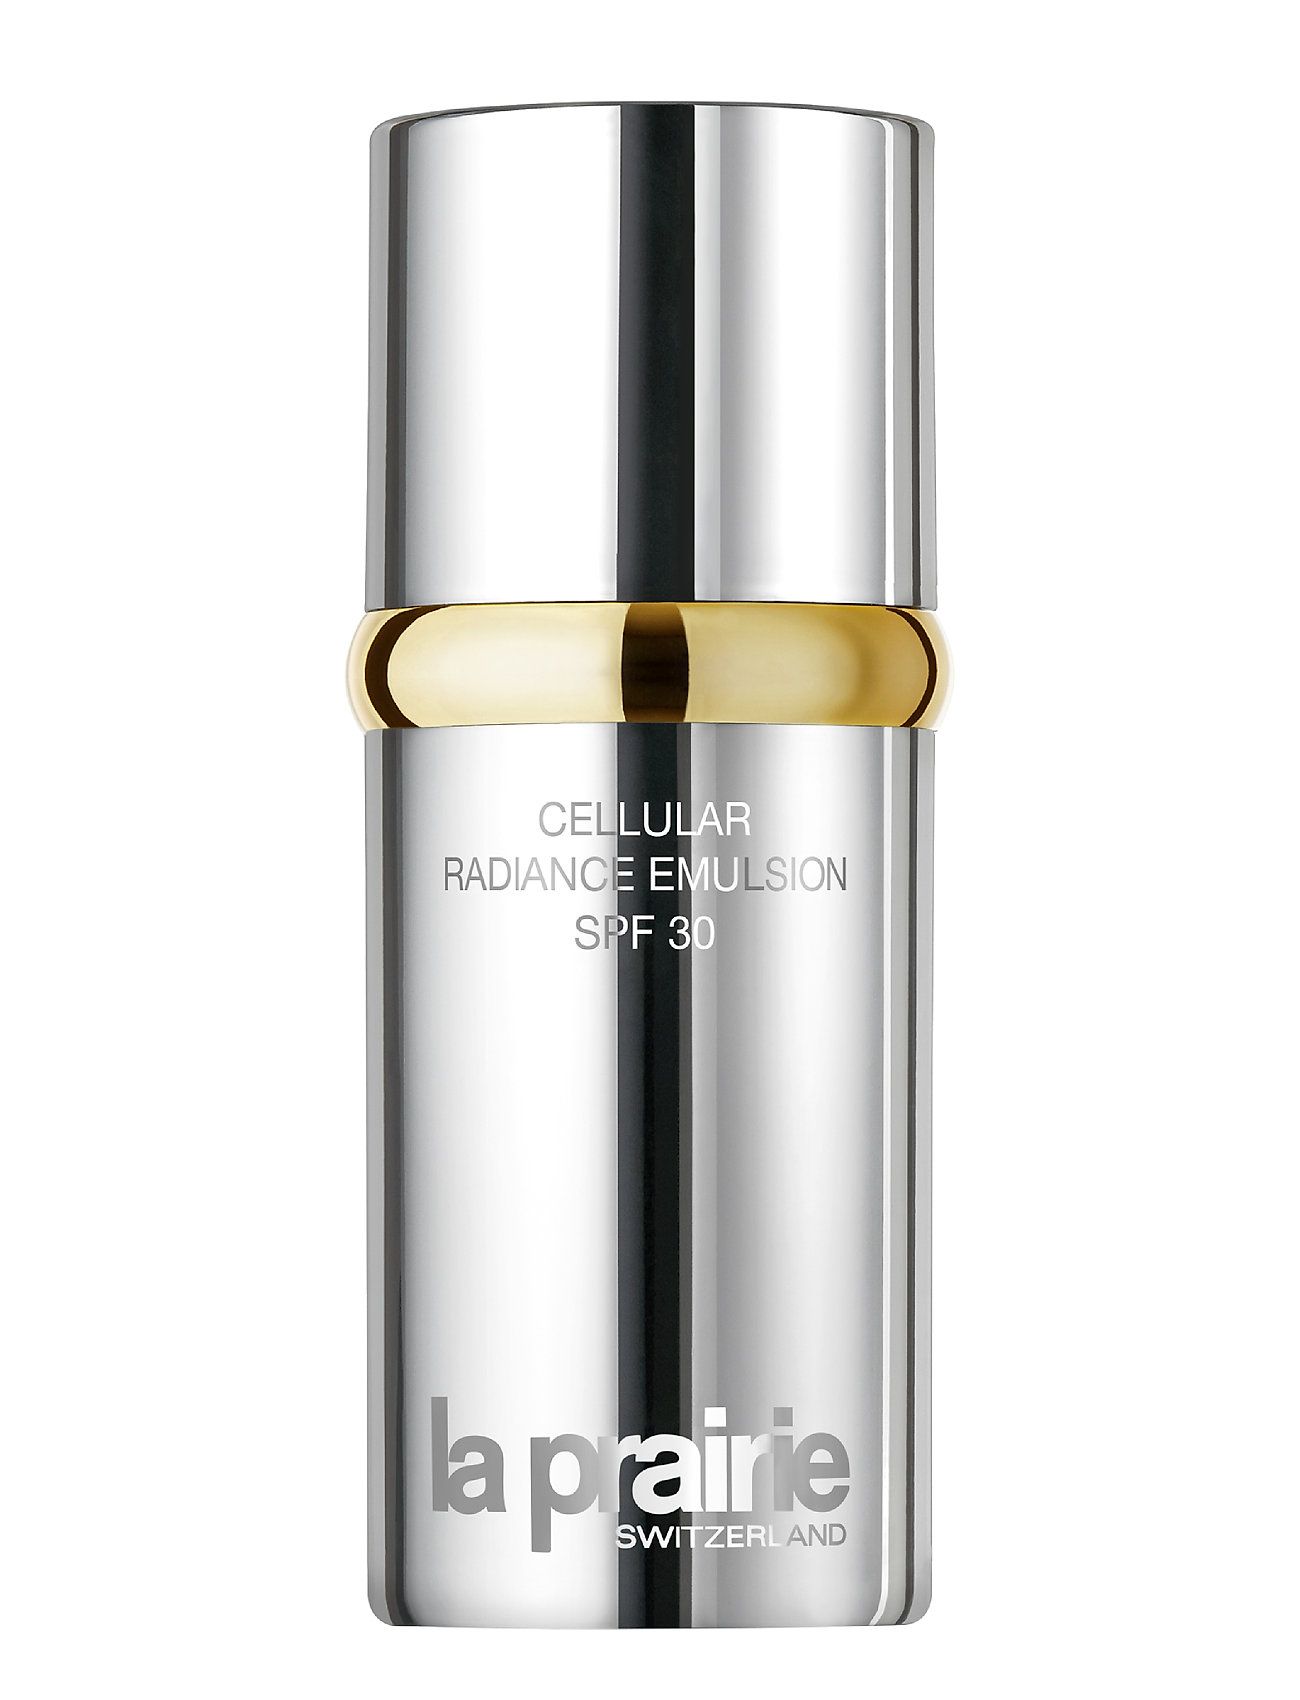 Image of Radiance Cellular Emulsion Spf 30 Beauty WOMEN Skin Care Face Day Creams Nude La Prairie (3067506113)